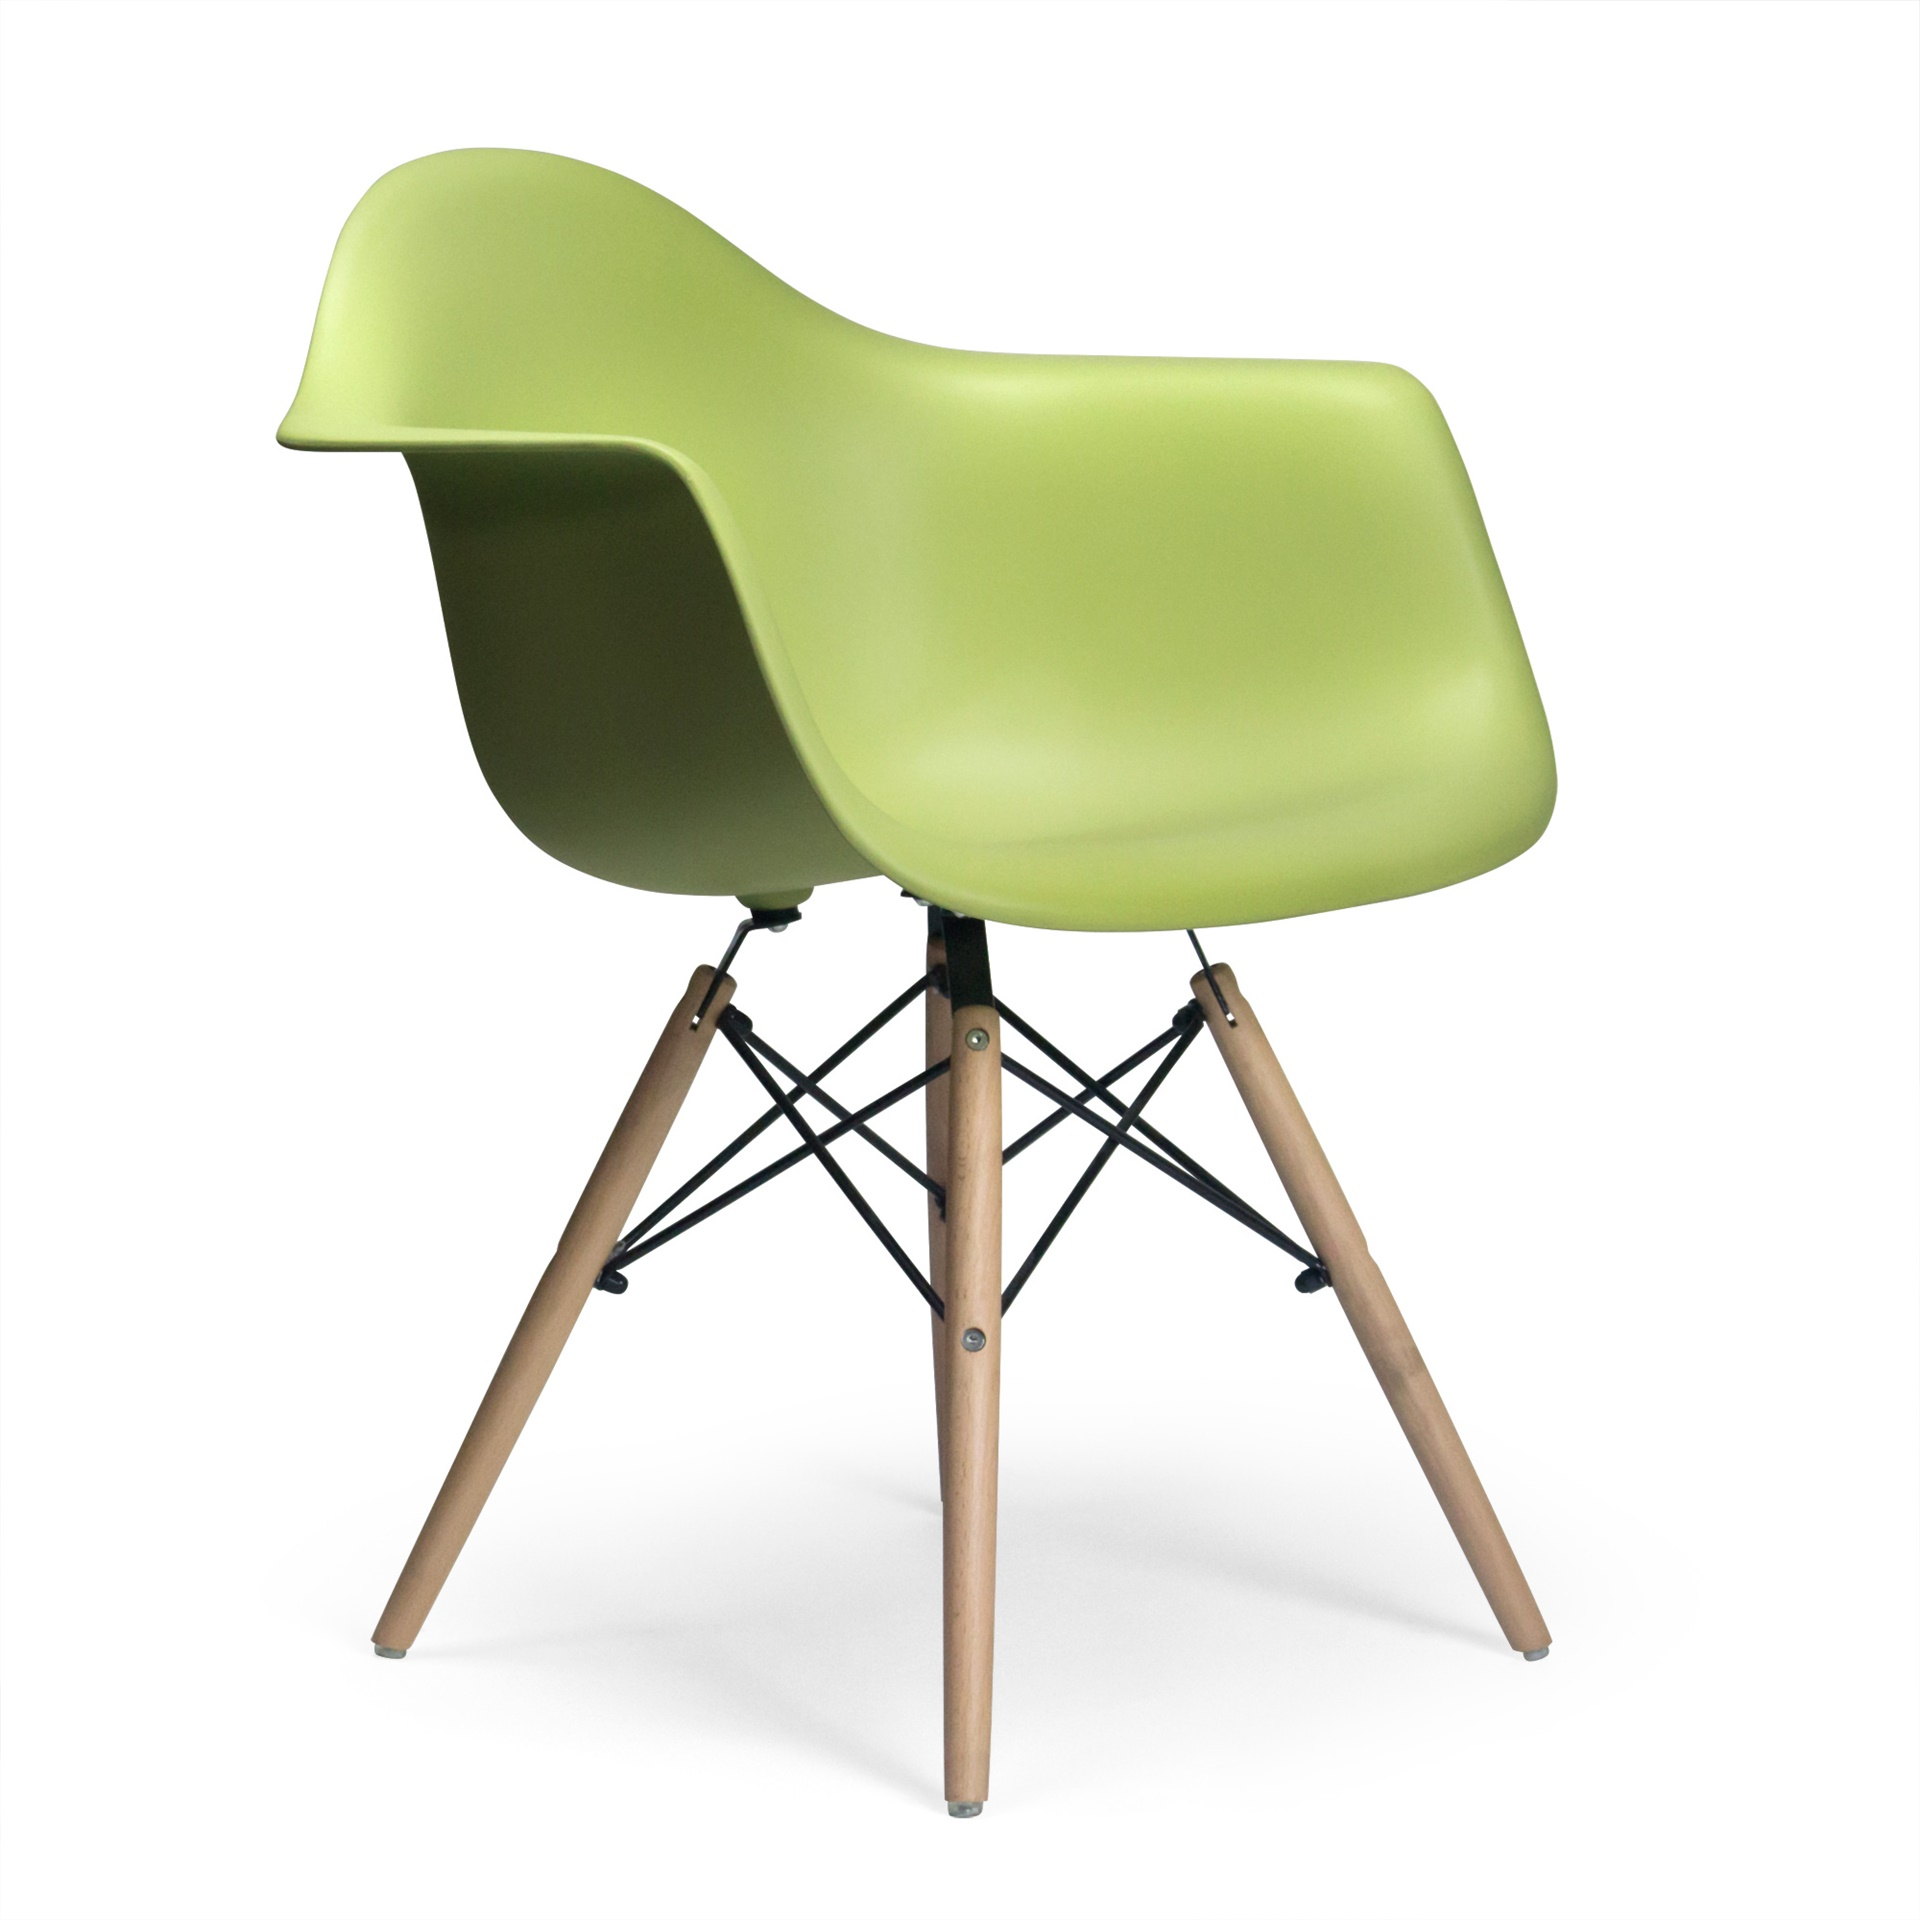 Attrayant Molded Plastic Armchair With Wood Legs. U003e